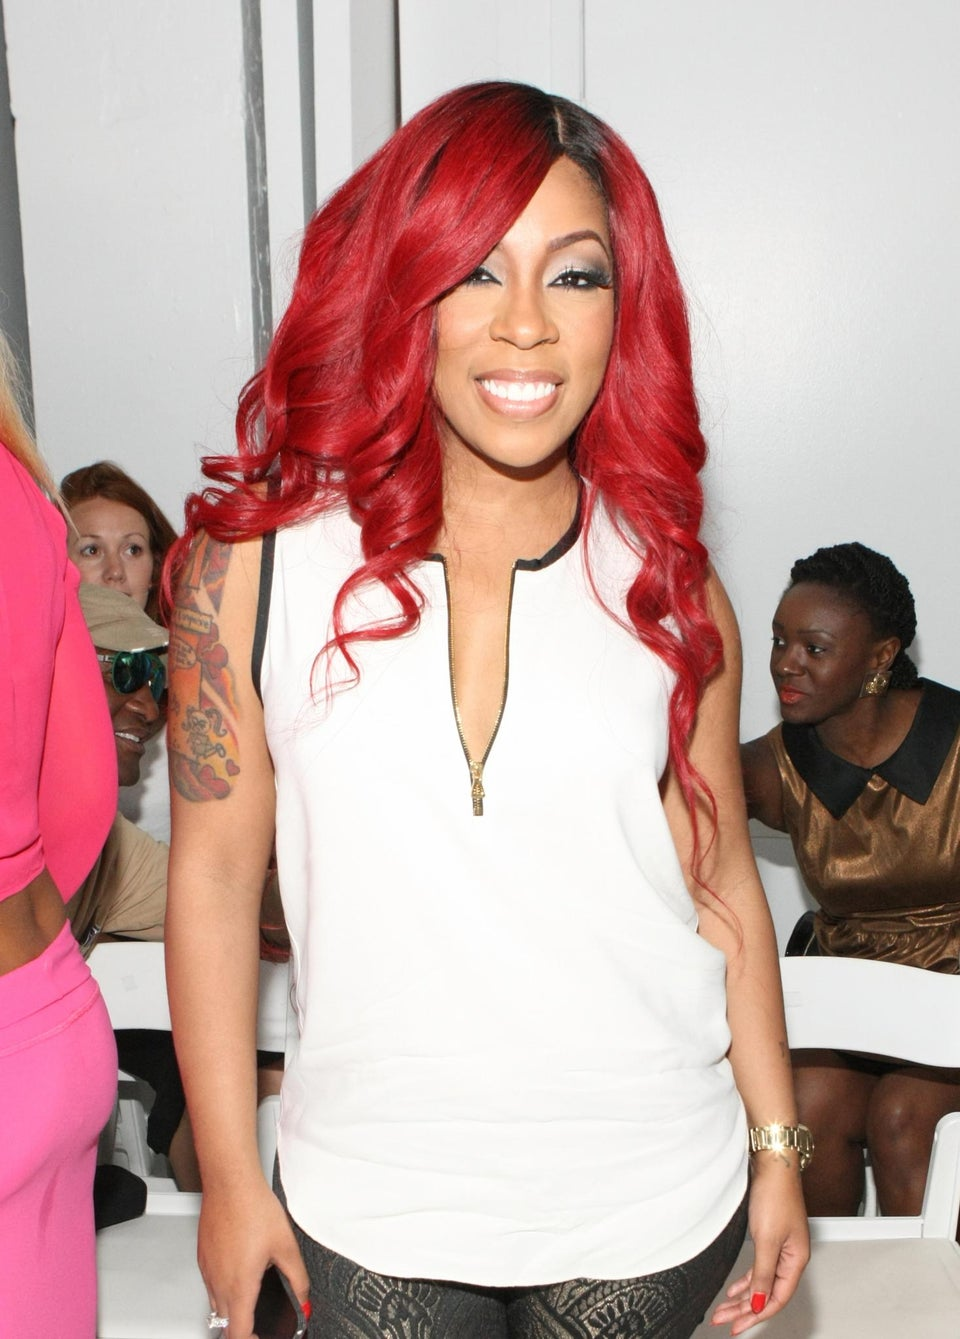 Has K. Michelle Found The Man Of Her Dreams? All Signs Point To Yes!